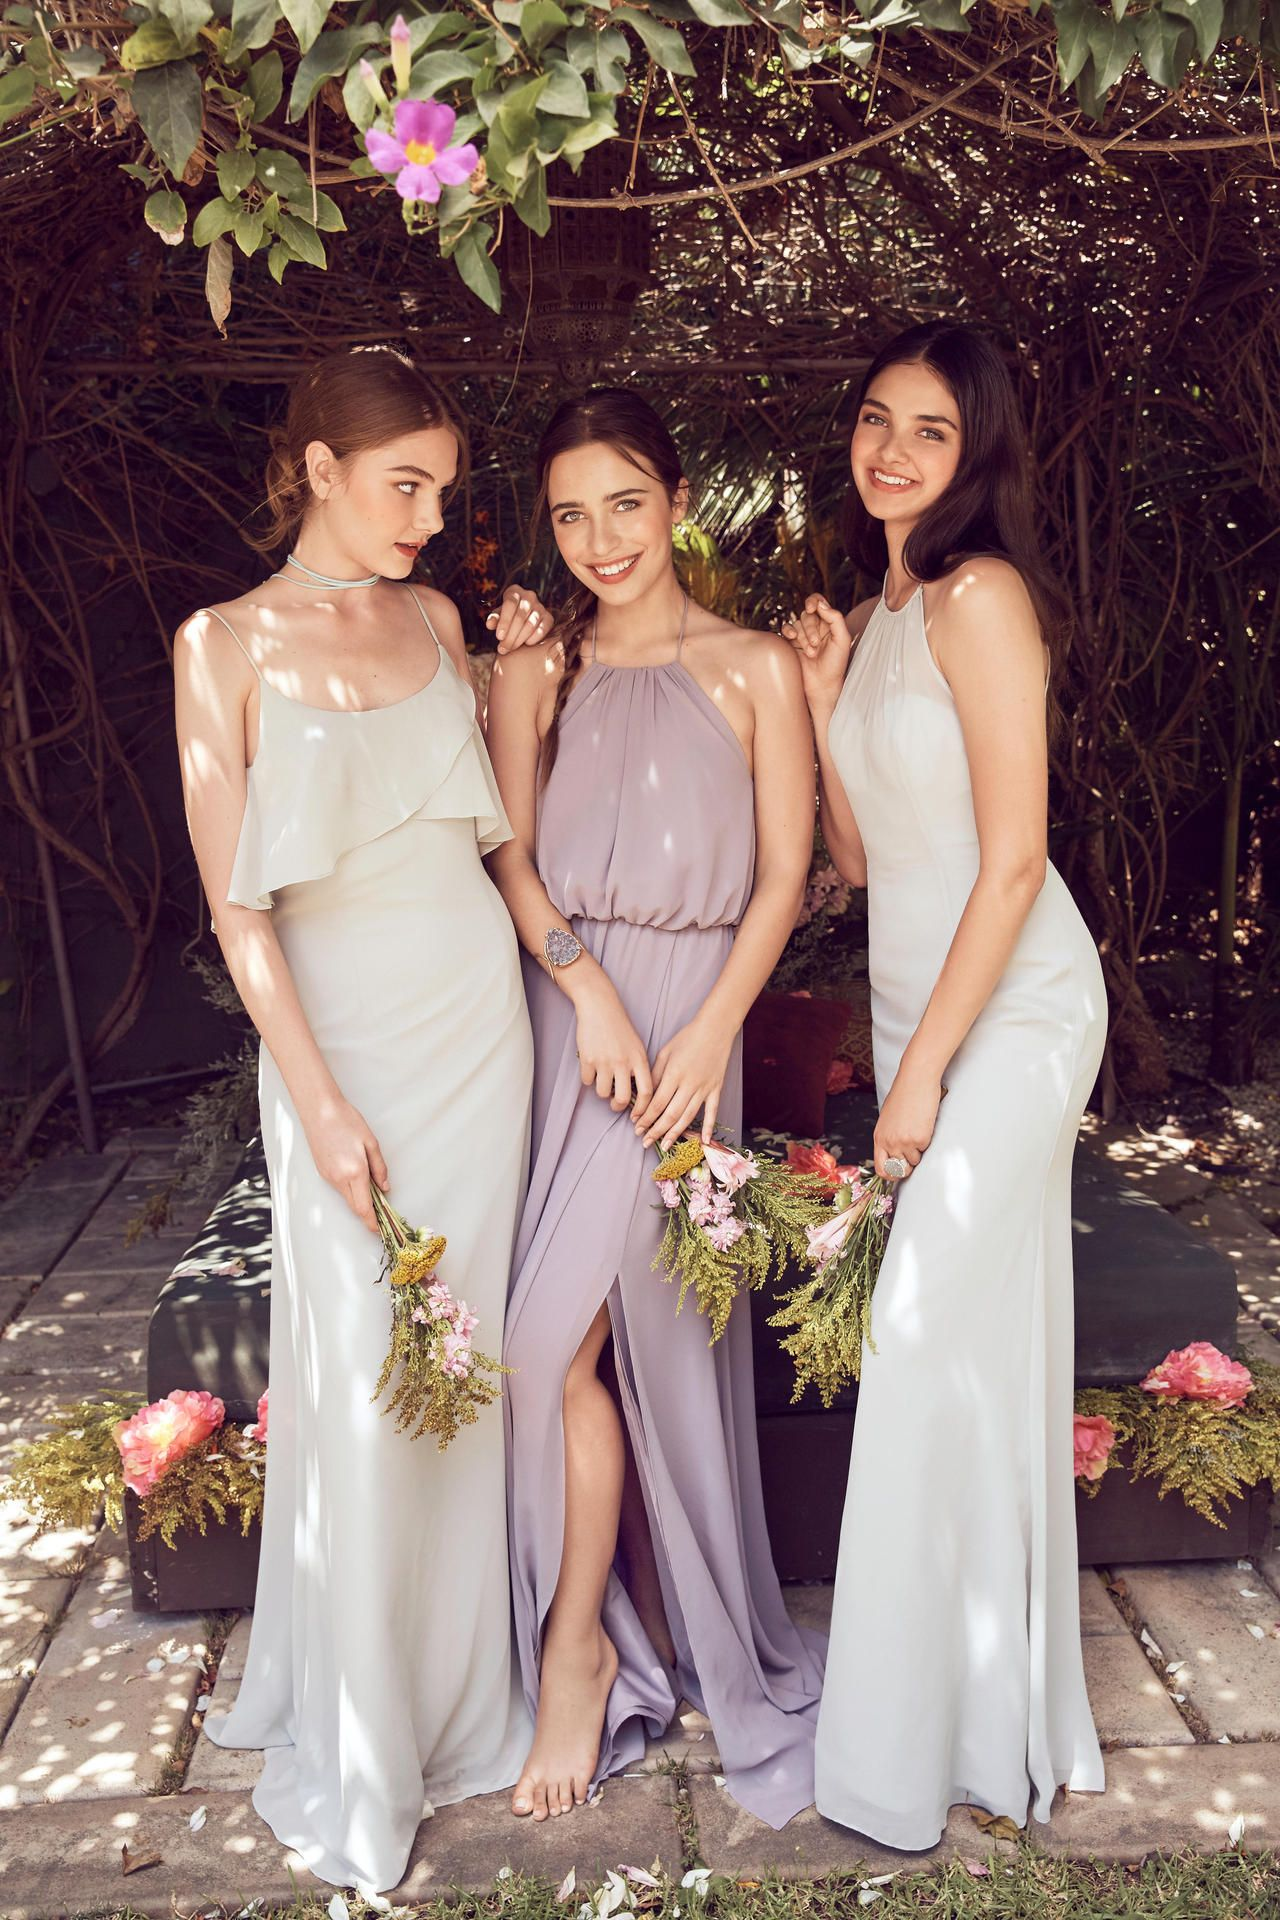 Trending for 2017: Muted bridesmaid dresses